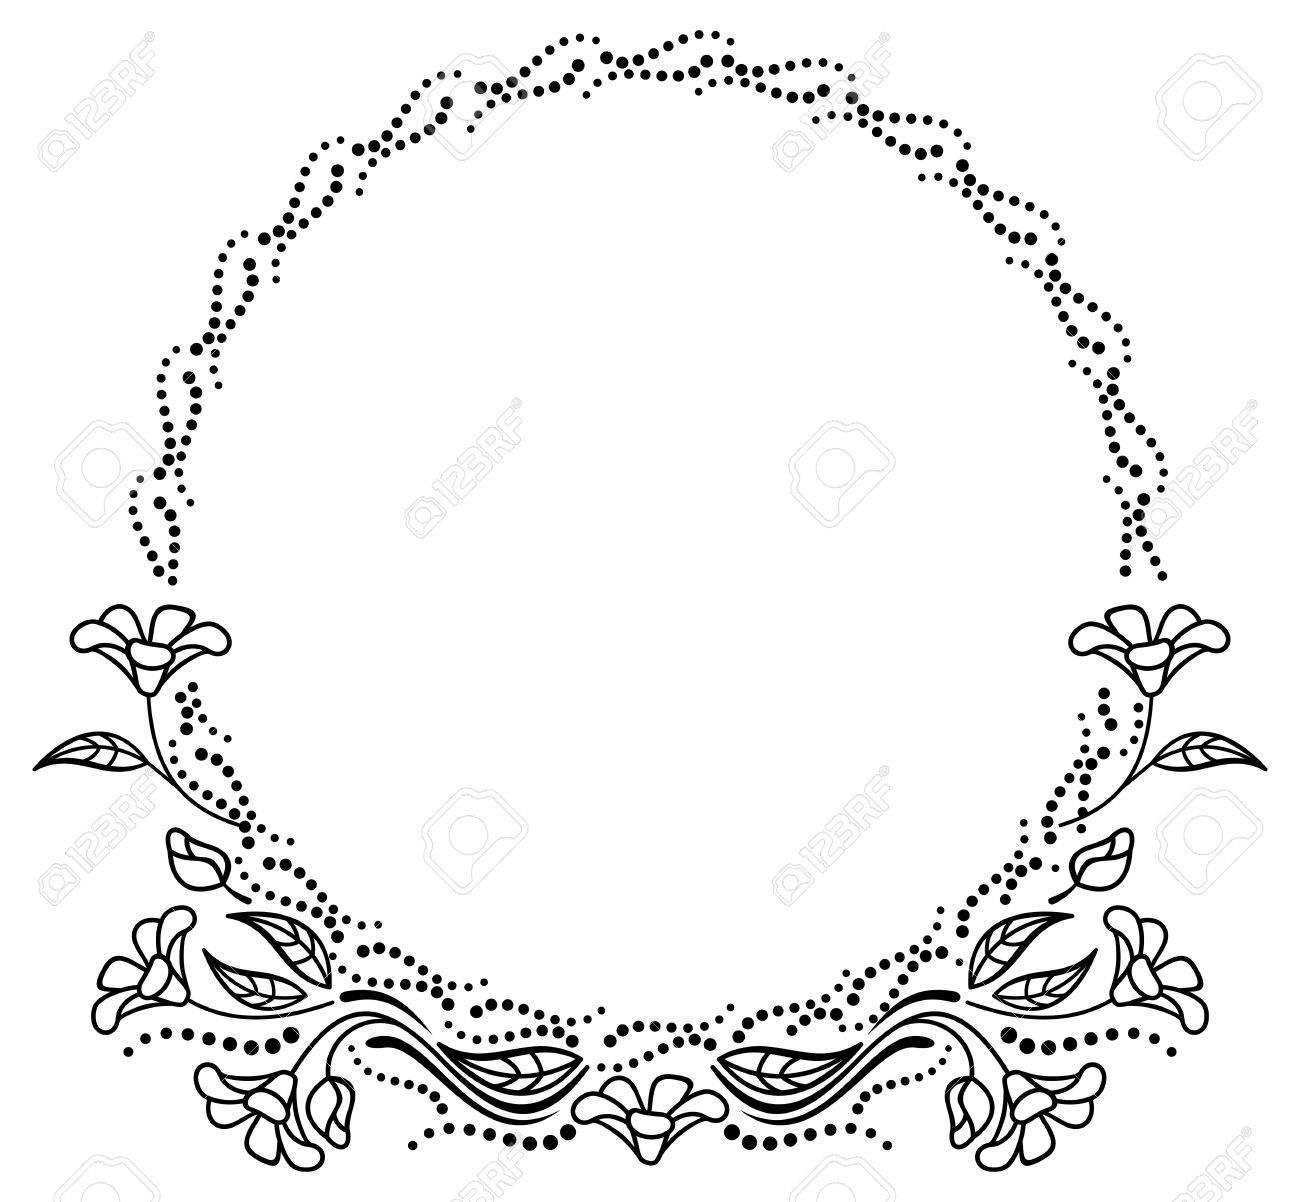 Round Black And White Frame Outline Decorative Flowers. Copy ...